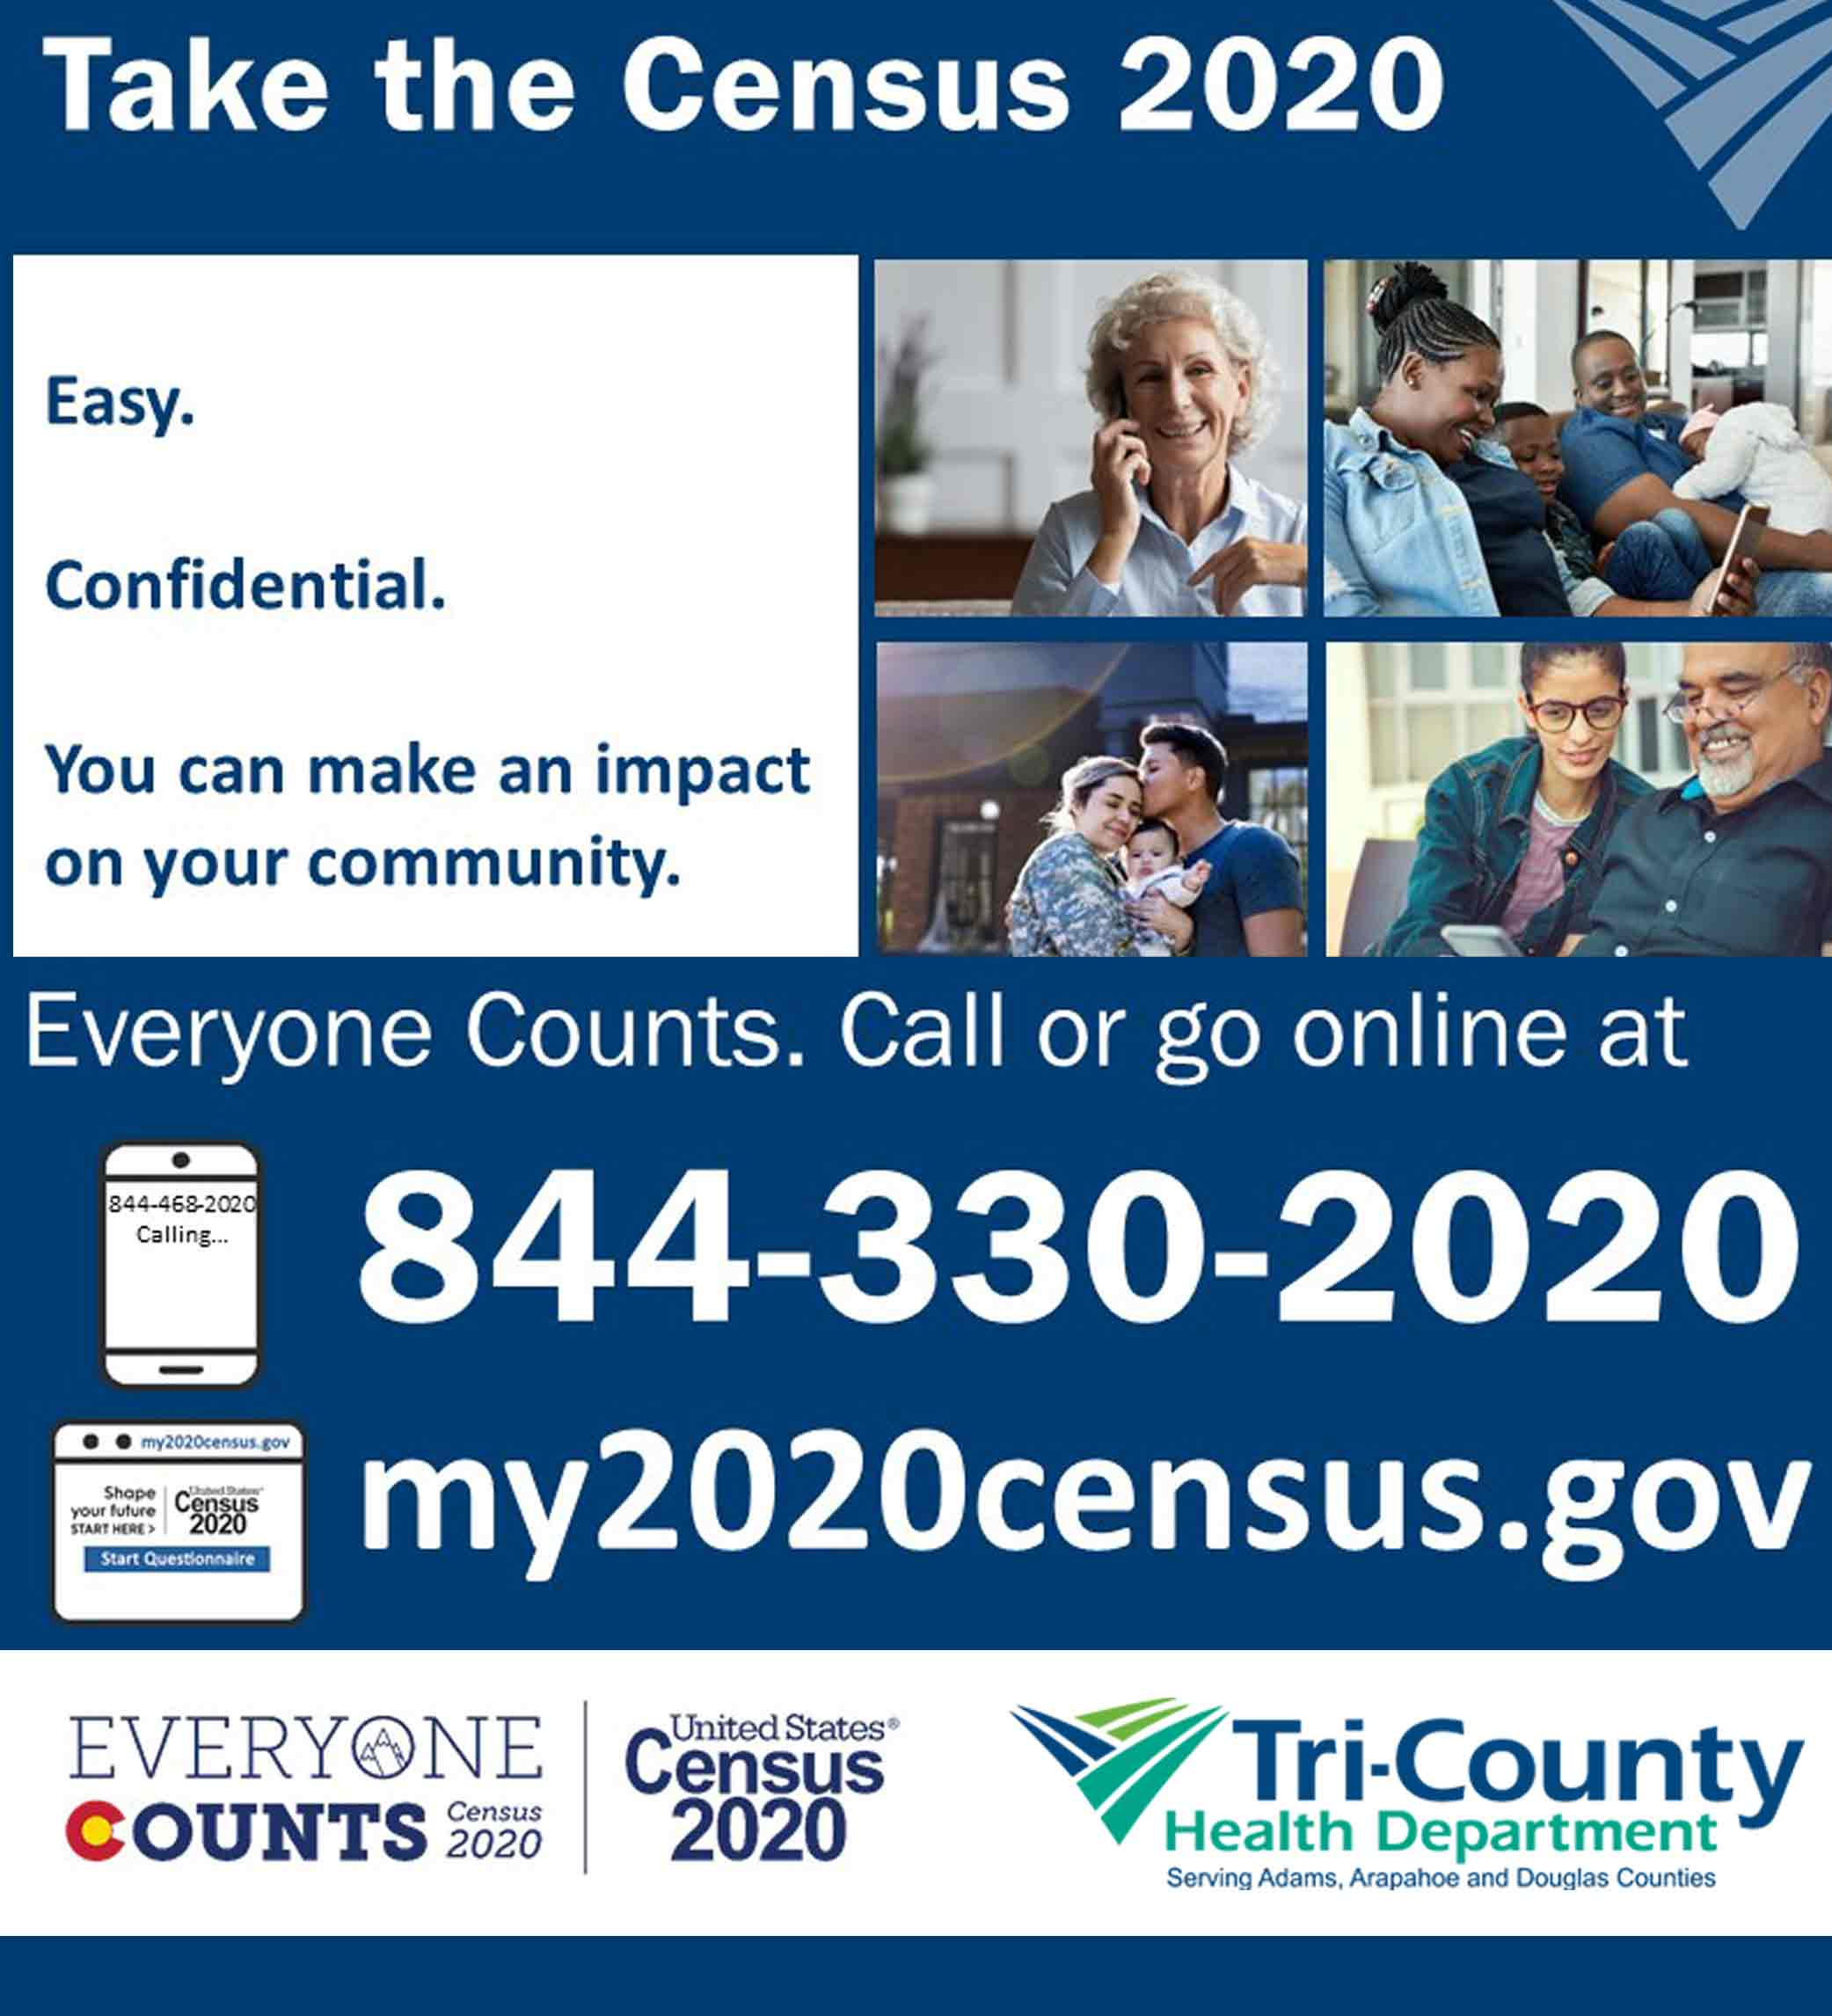 Four images of people on the phone or with their families with info to take the census